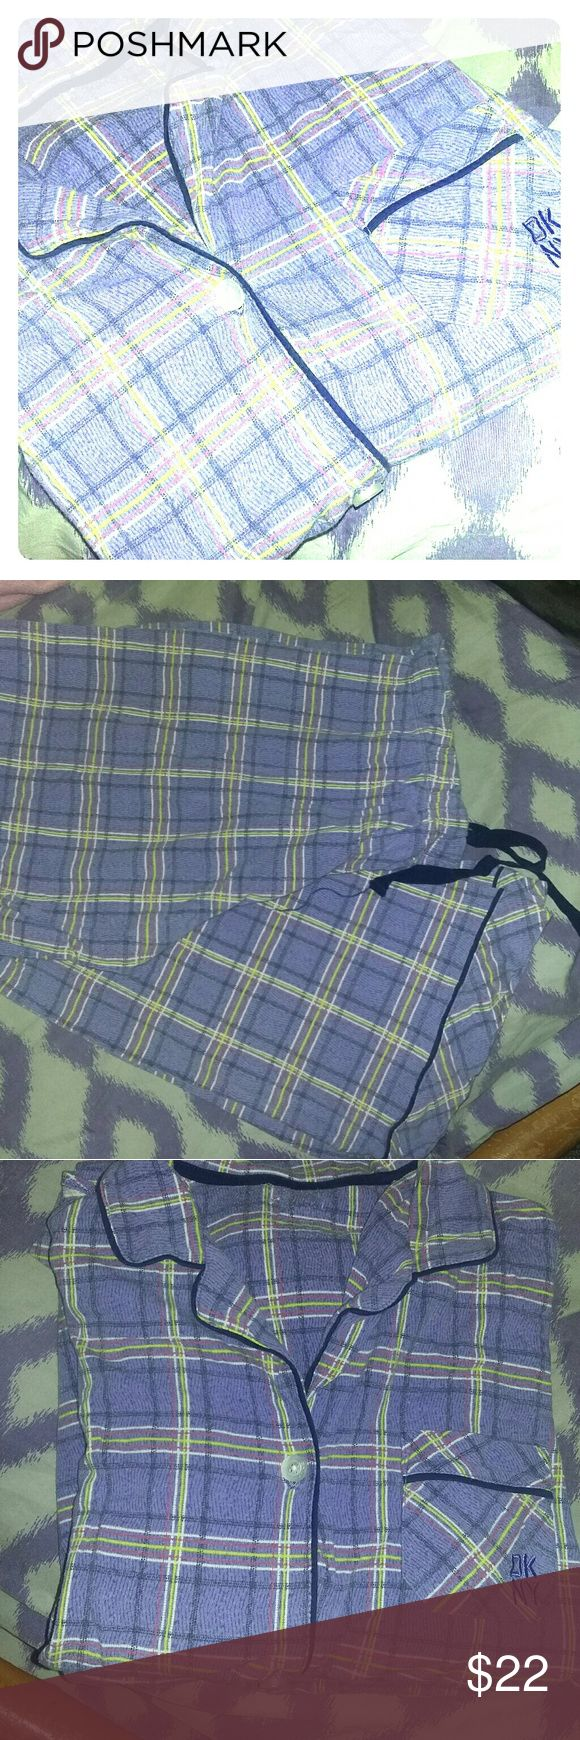 Nautical and PJ Couture jammies, and nwot slippers Purple/black, soft, warm flannel jammies by Nautical, sz L, $13. Soft, cute PJ Couture jammies with a soild tank and shorts decorated with skulls sz L, $15. Brand new, never worn grey flannel ankle slippers that come from a safe shelter that feed 32 pets upon purchase, sz 6, $18. $46 if purchased separate, $22!!!! If purchased together! And animals will get food and toys 😍 Nautical Intimates & Sleepwear